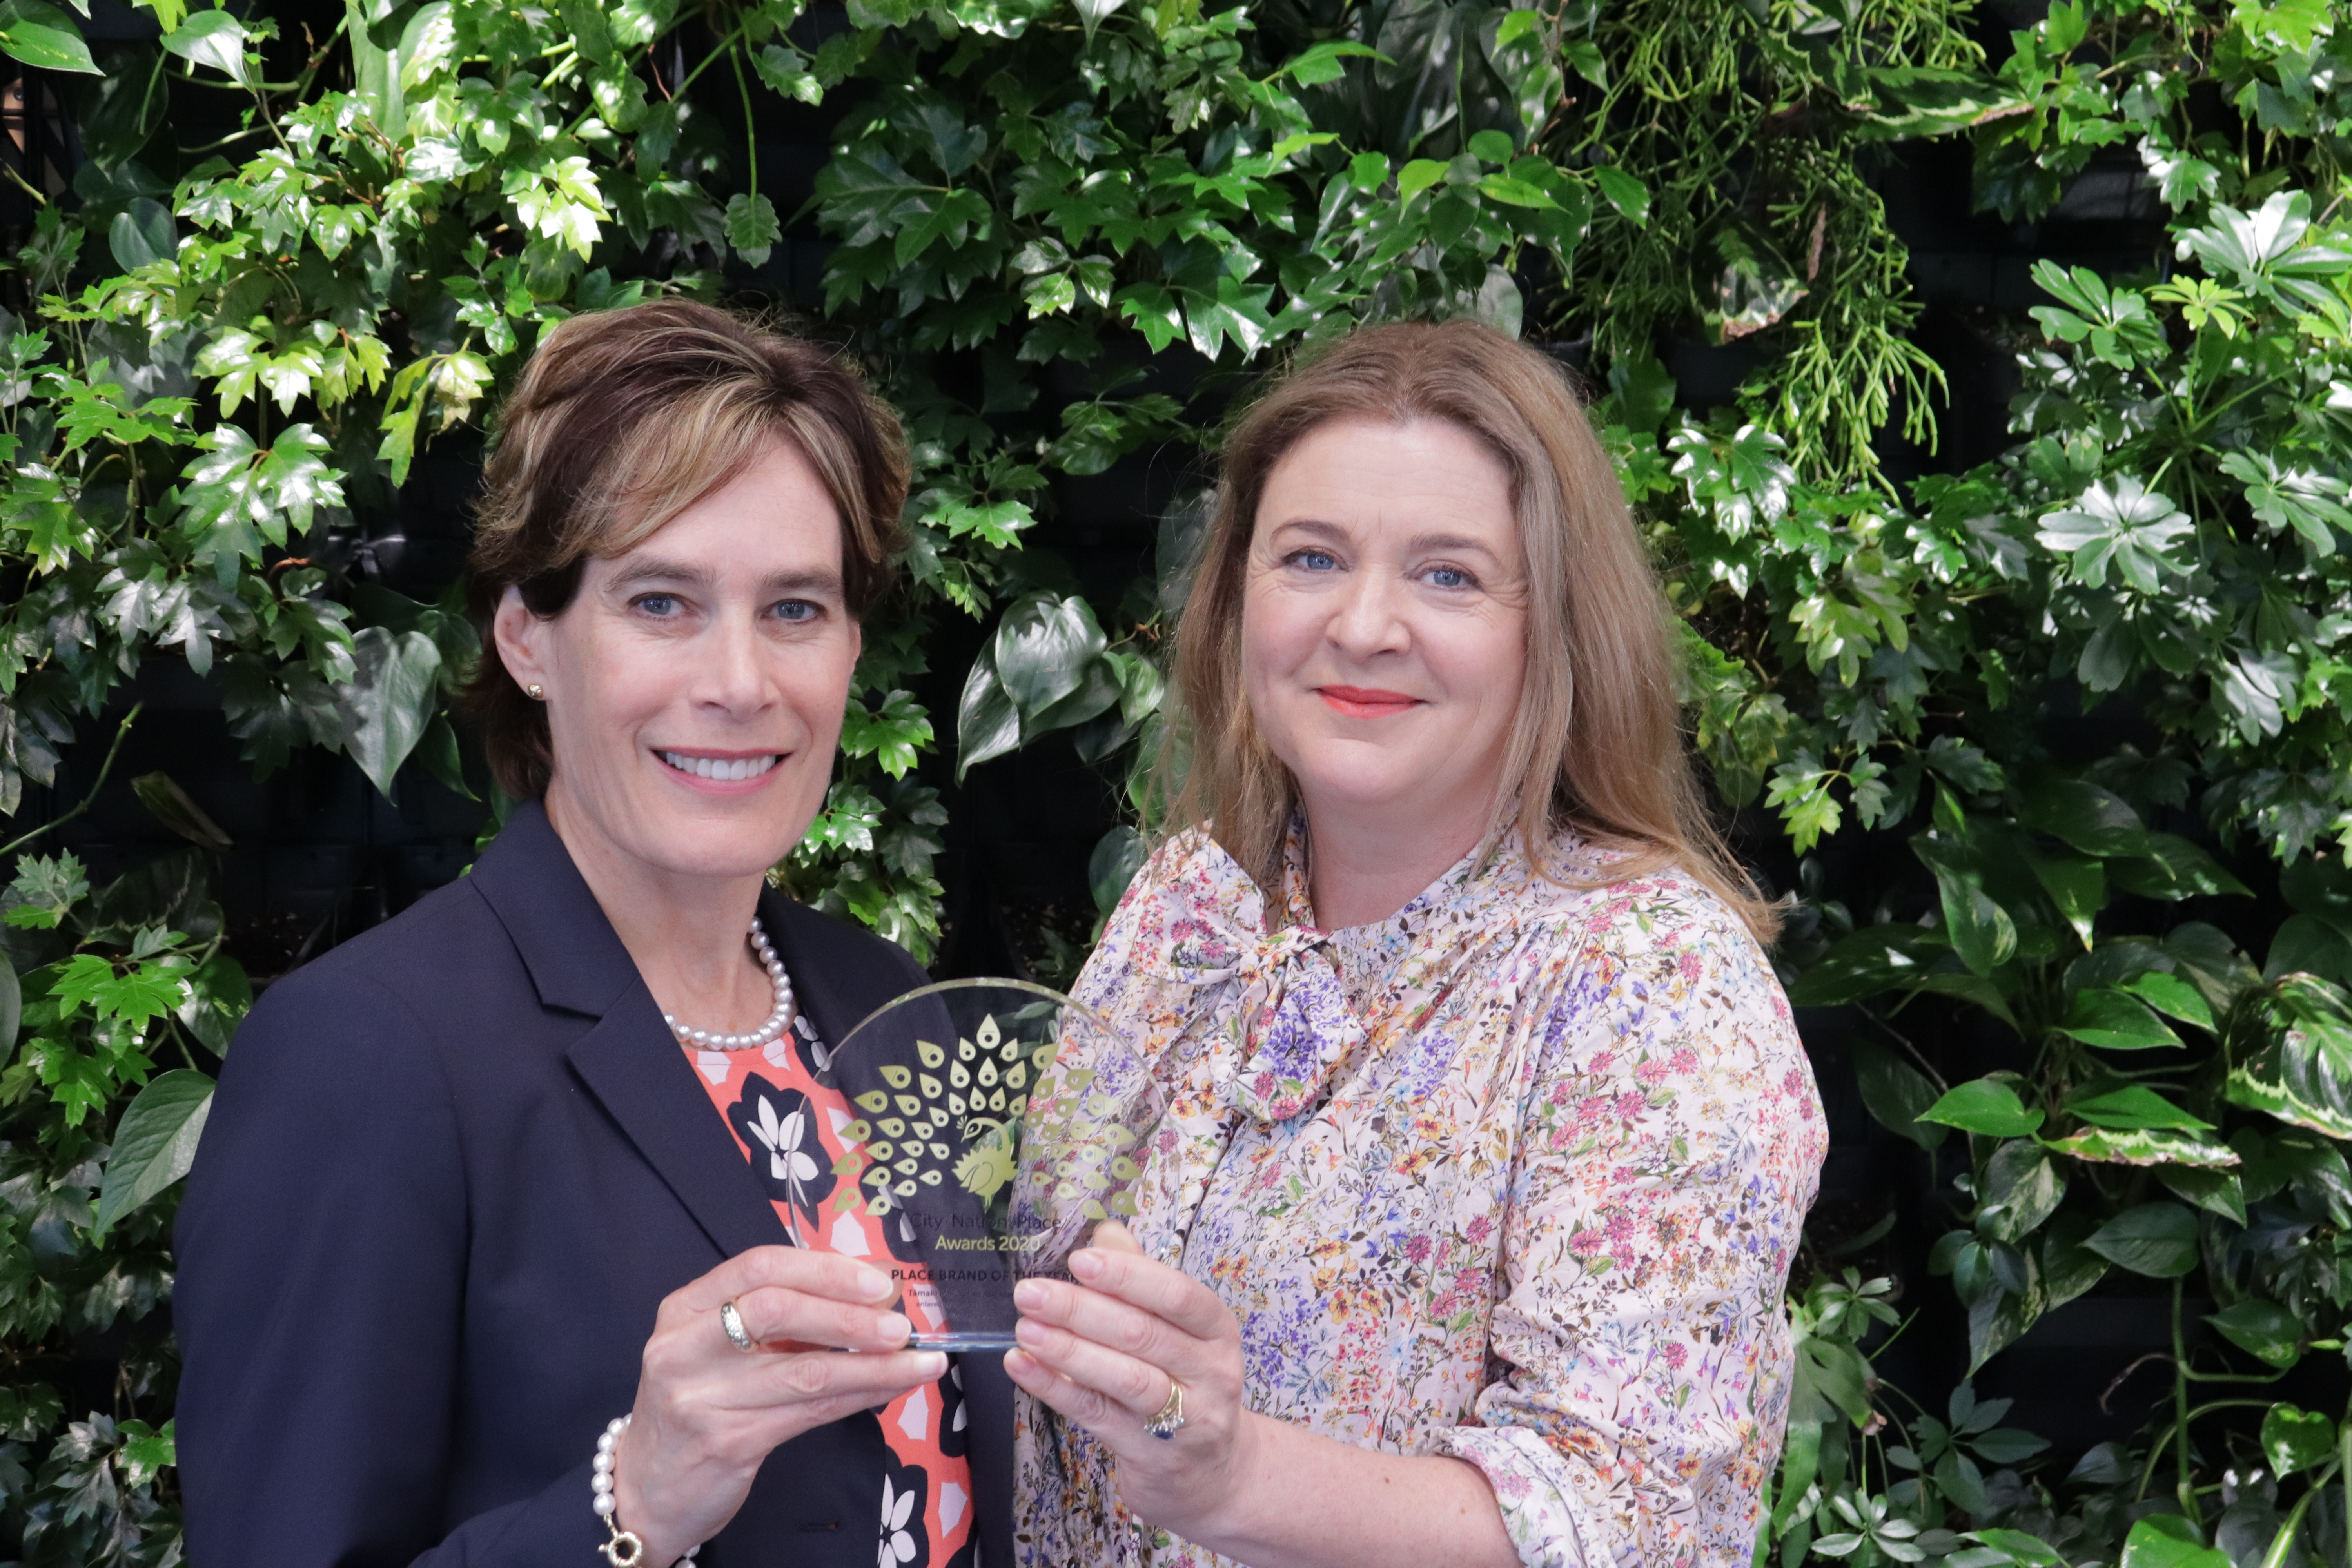 Two team members from Auckland Tourism, Event, and Economic Development, celebrate with their award for Place Brand of the Year